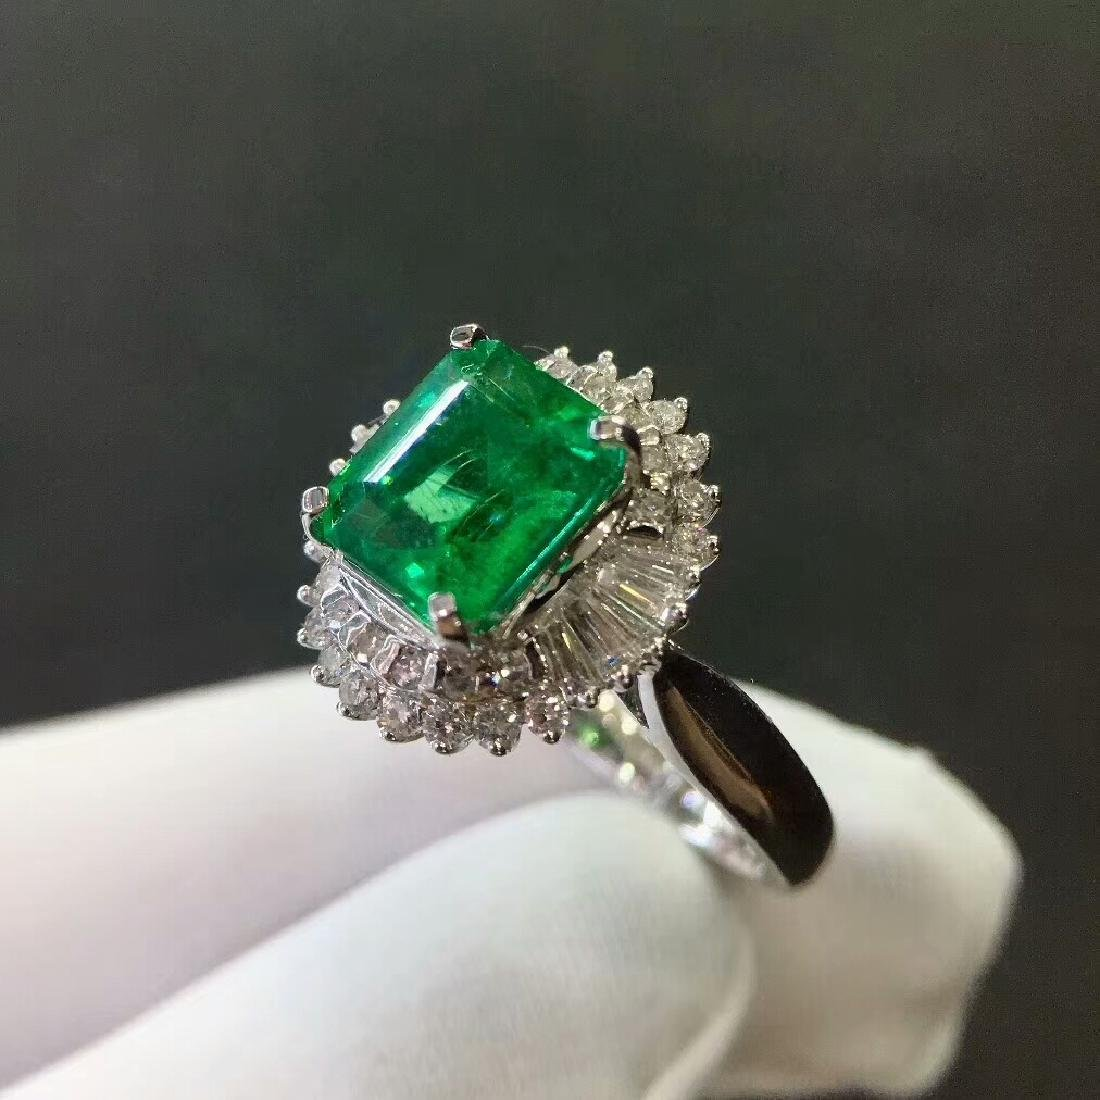 2.7ct Emerald Ring in 18kt white Gold - 6